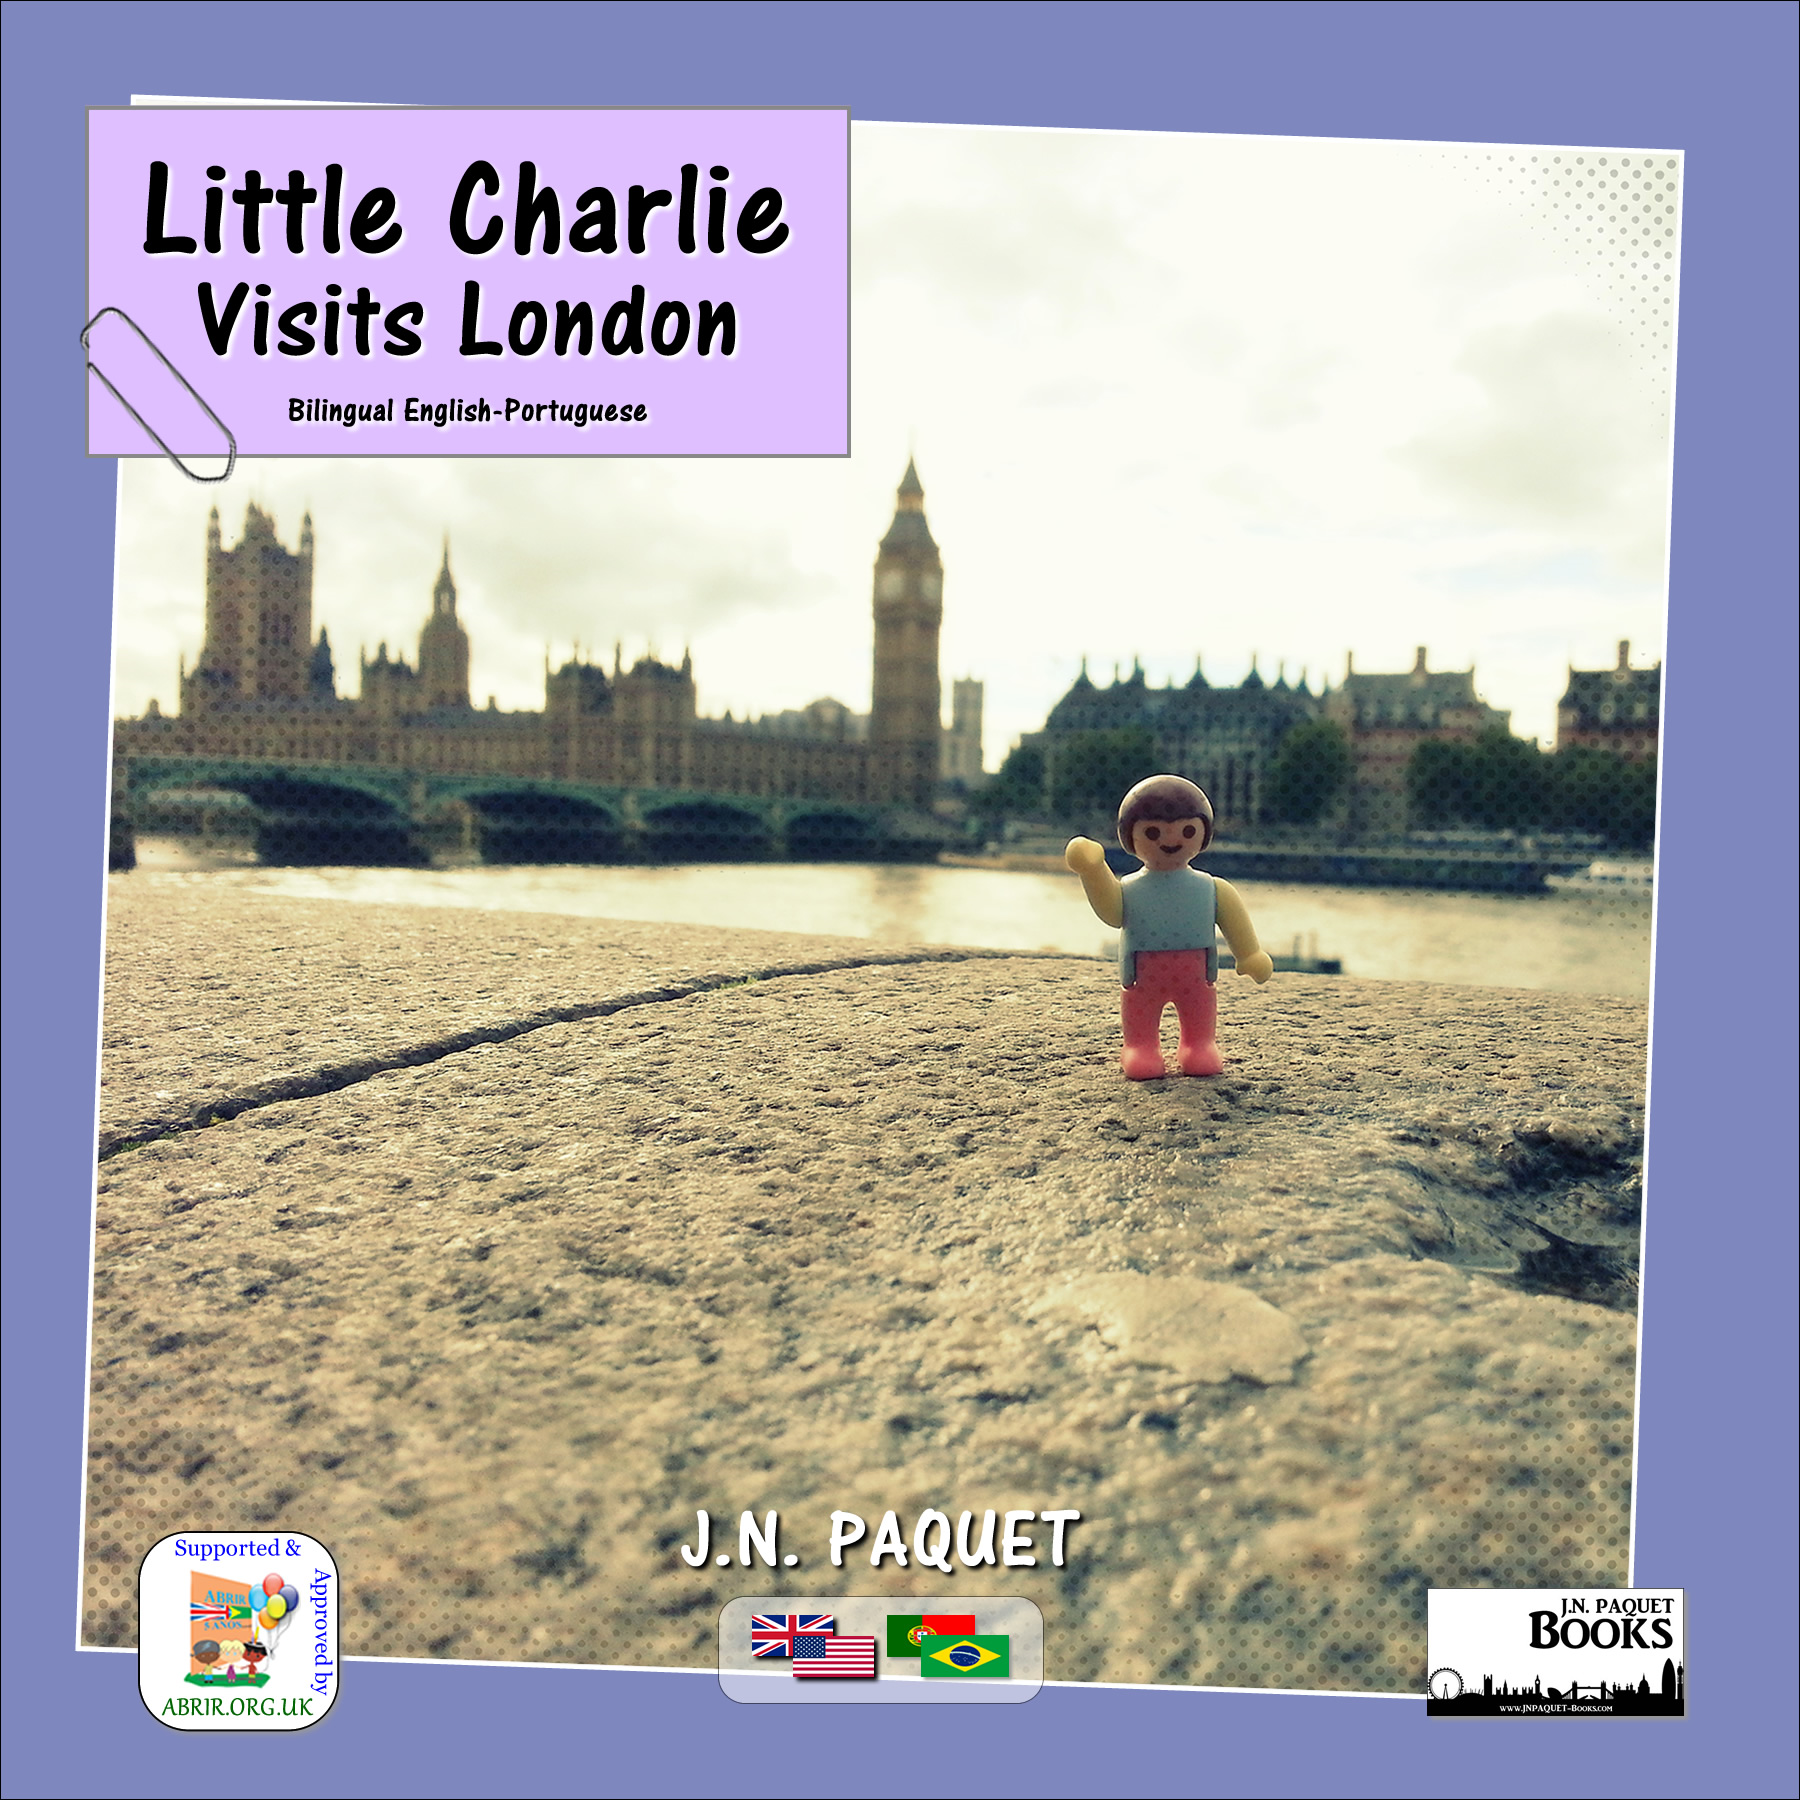 Little Charlie Visits London (Bilingual English-Portuguese) By: J.N. PAQUET